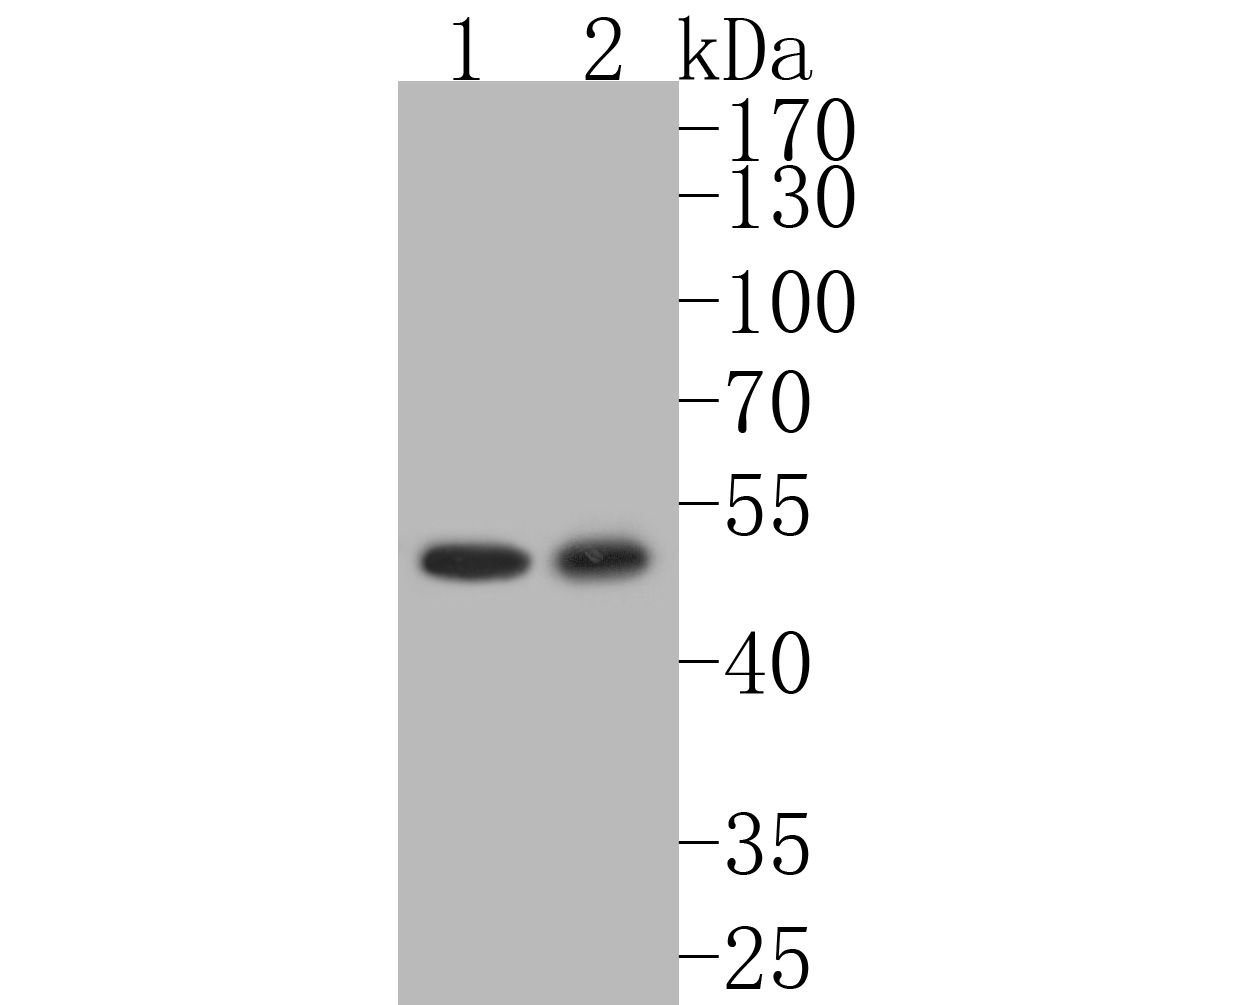 Western blot analysis of Phospho-c-Myc (T58+S62) on different lysates. Proteins were transferred to a PVDF membrane and blocked with 5% BSA in PBS for 1 hour at room temperature. The primary antibody (ET1603-24, 1/500) was used in 5% BSA at room temperature for 2 hours. Goat Anti-Rabbit IgG - HRP Secondary Antibody (HA1001) at 1:5,000 dilution was used for 1 hour at room temperature.<br />  Positive control: <br />  Lane 1: K562 cell lysate<br />  Lane 2: SH-SY5Y cell lysate